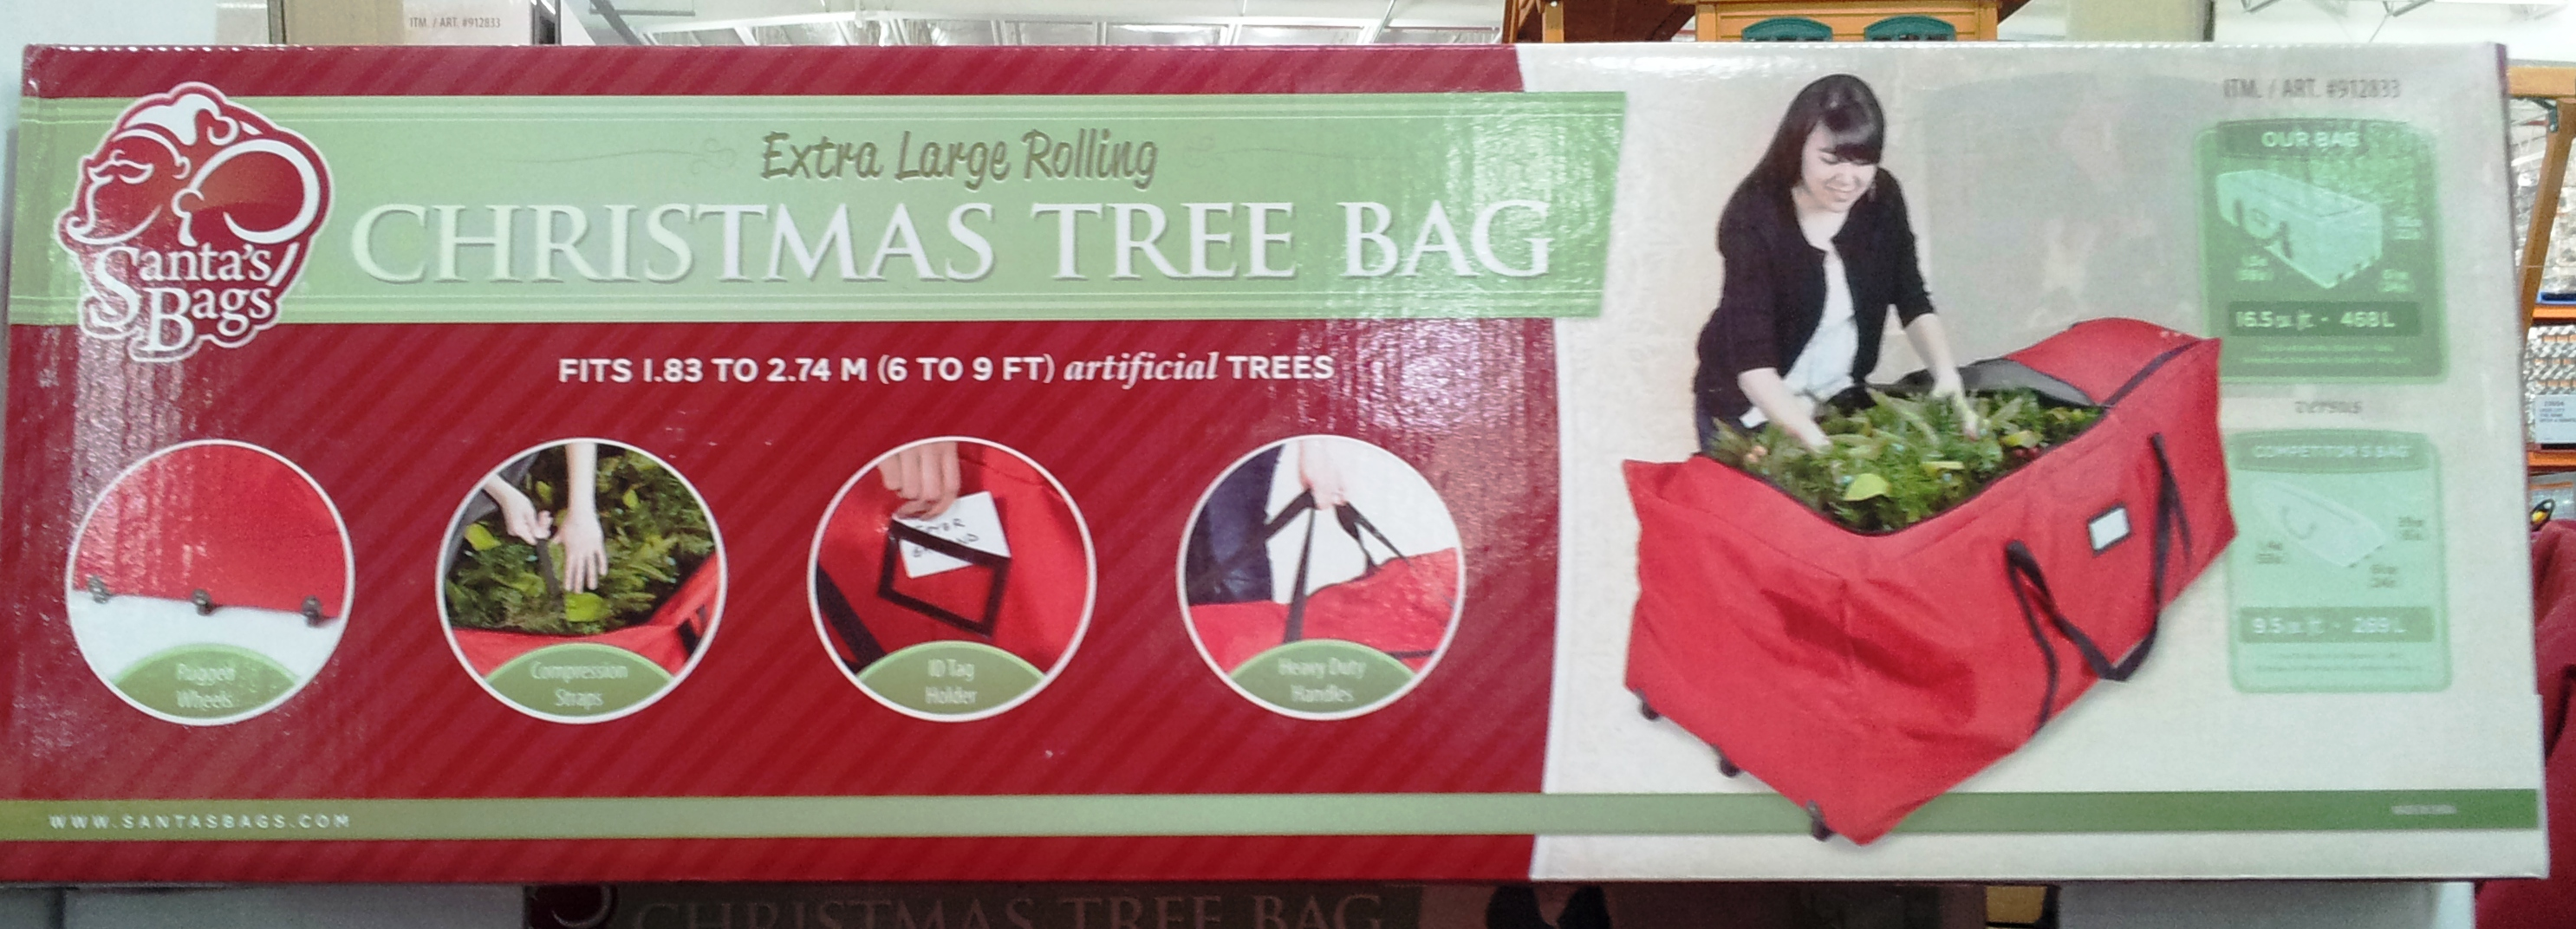 12 days of costco christmas day 7 loaded trolley - Rolling Christmas Tree Storage Bag